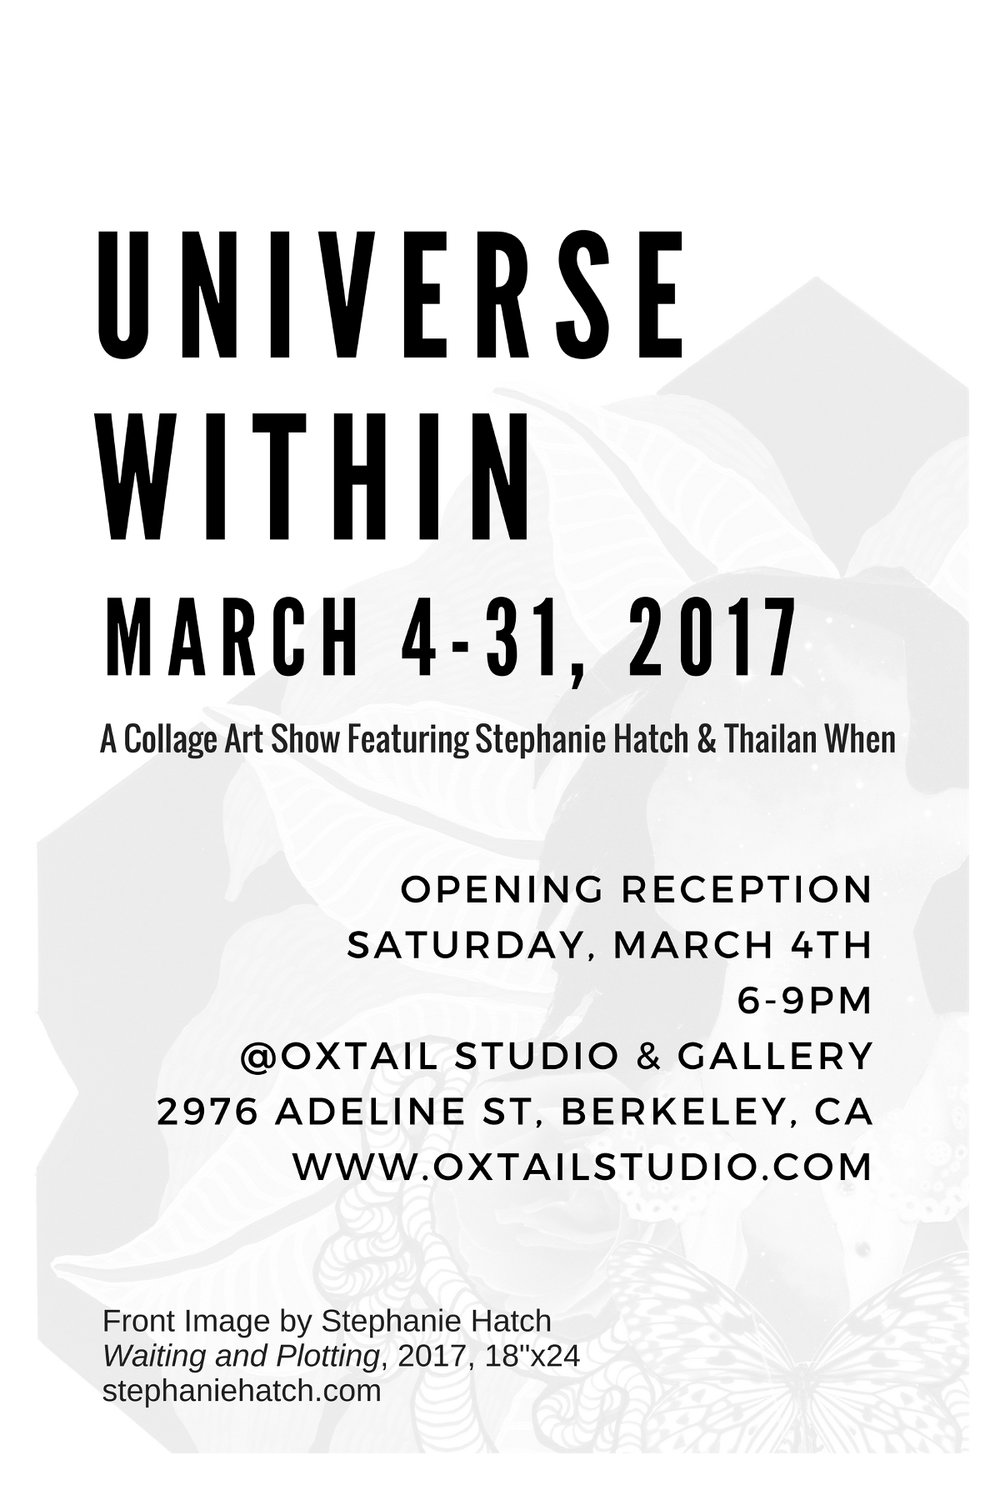 Universe Within Postcard Back 2017.jpg